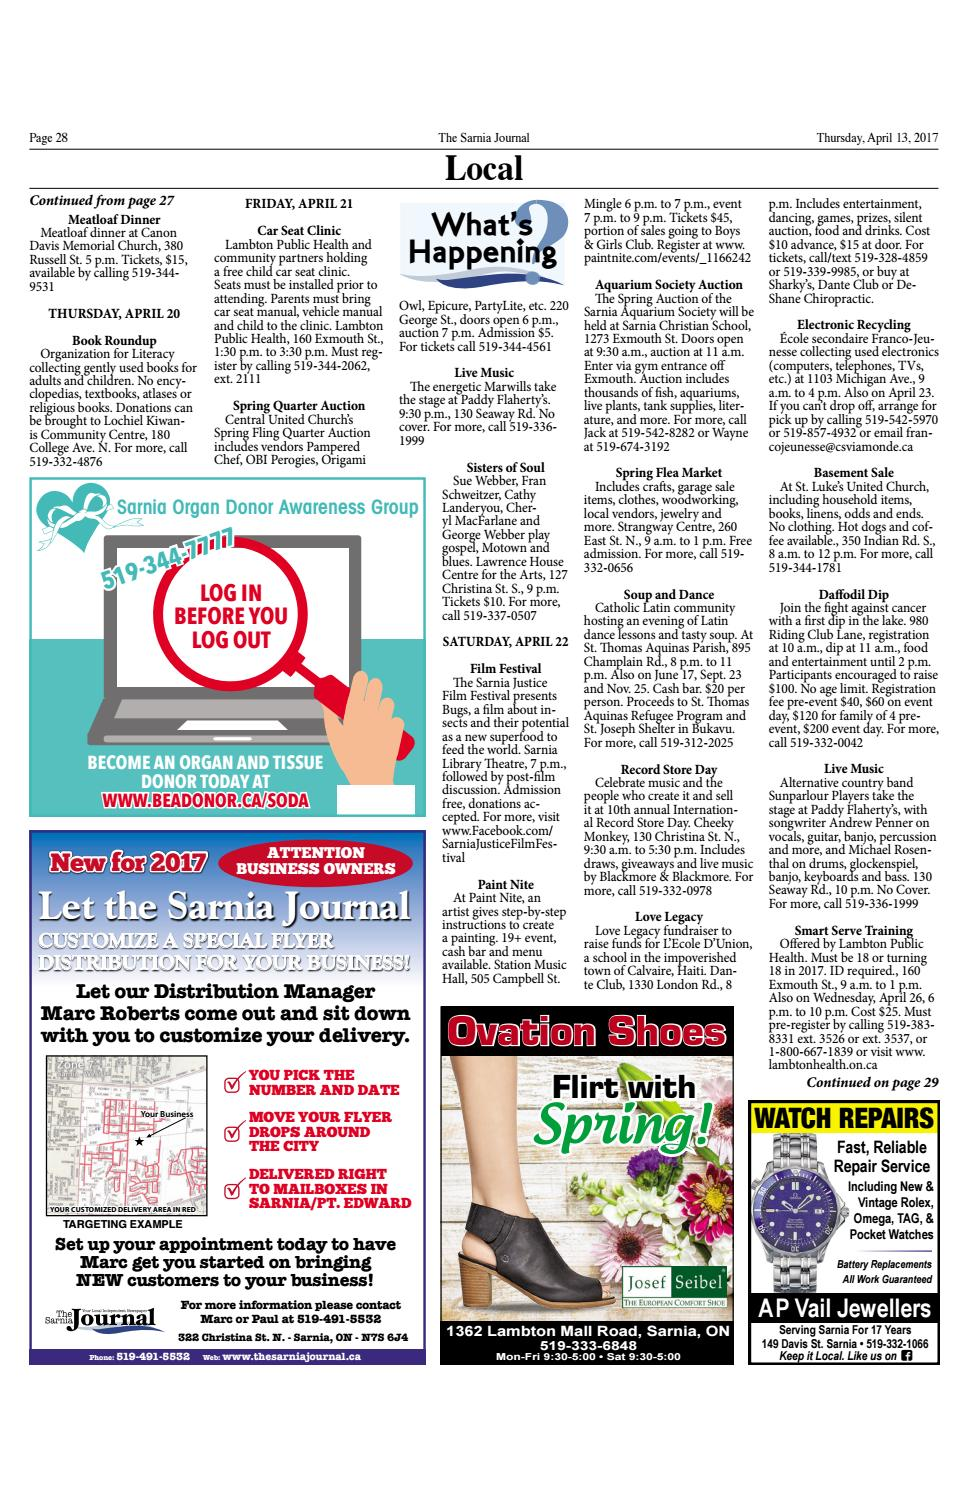 Sarnia Journal April 13 2017 By The Sarnia Journal Issuu